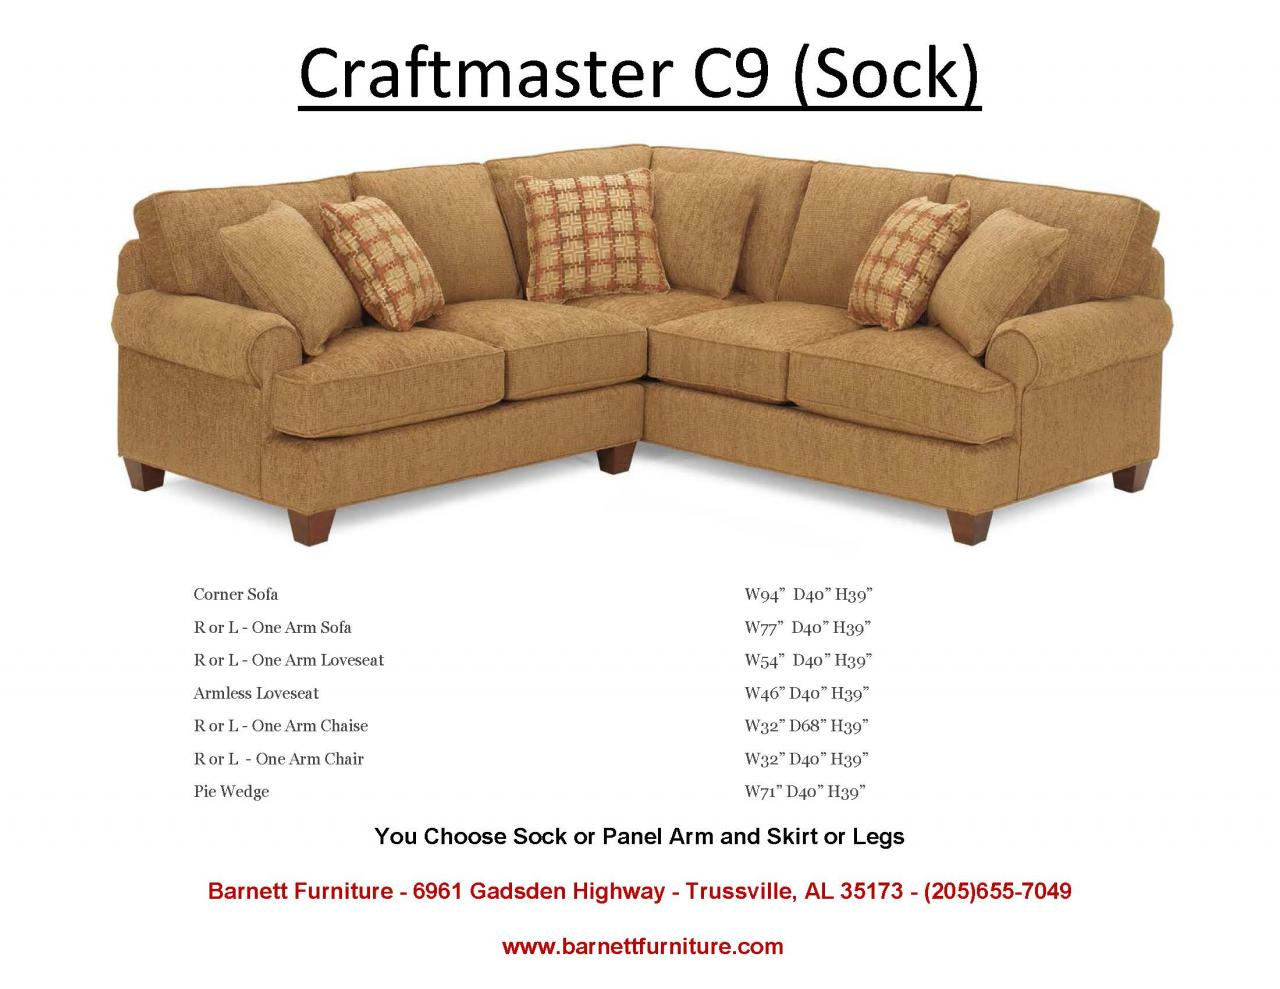 Craftmaster C9 Sectional with Sock Arm Turned Leg